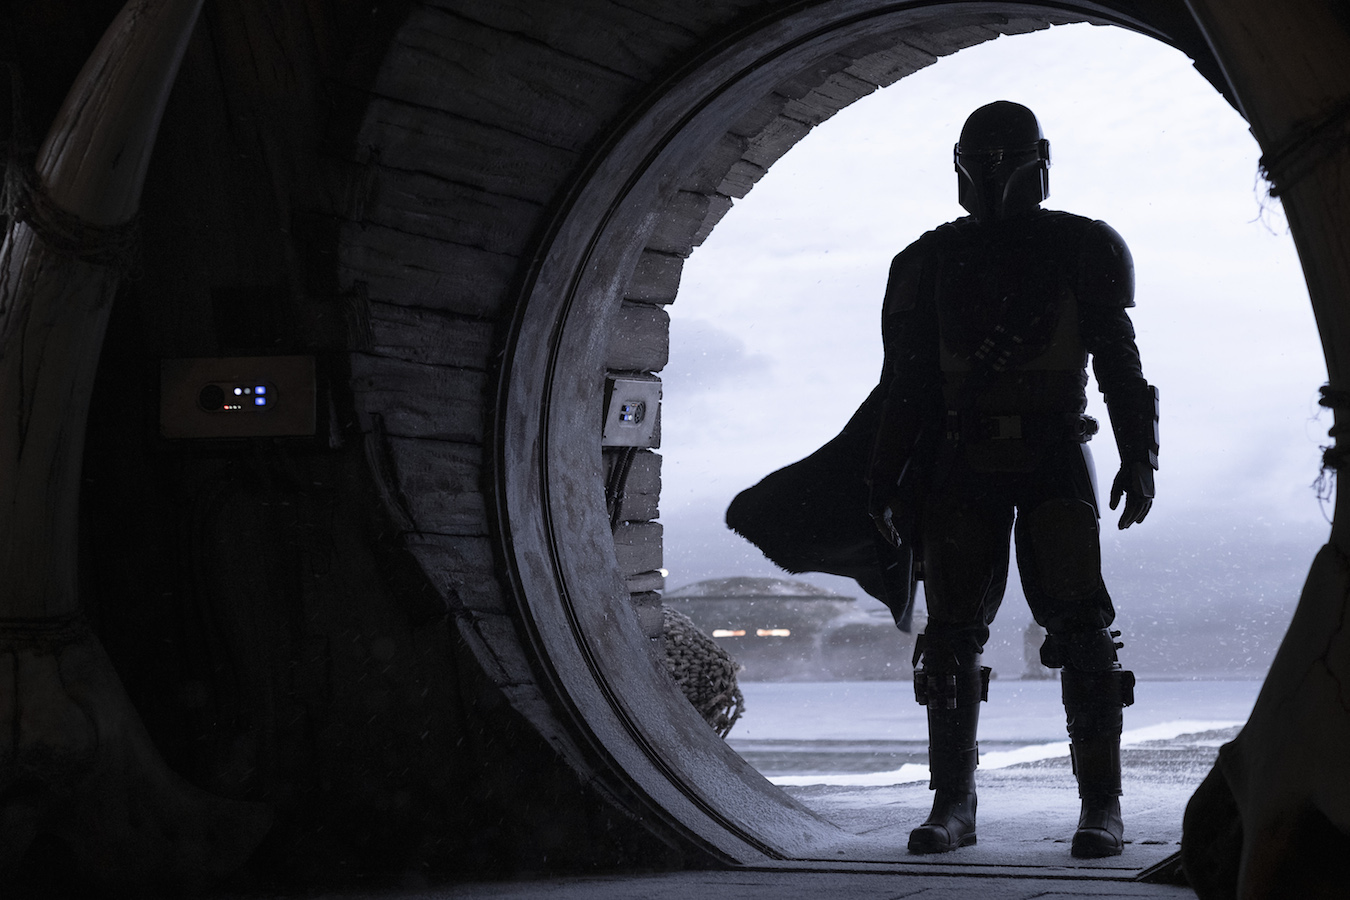 We Finally Have a Trailer of Pedro Pascal as a Bounty Hunter in 'Star Wars' Series 'The Mandalorian'